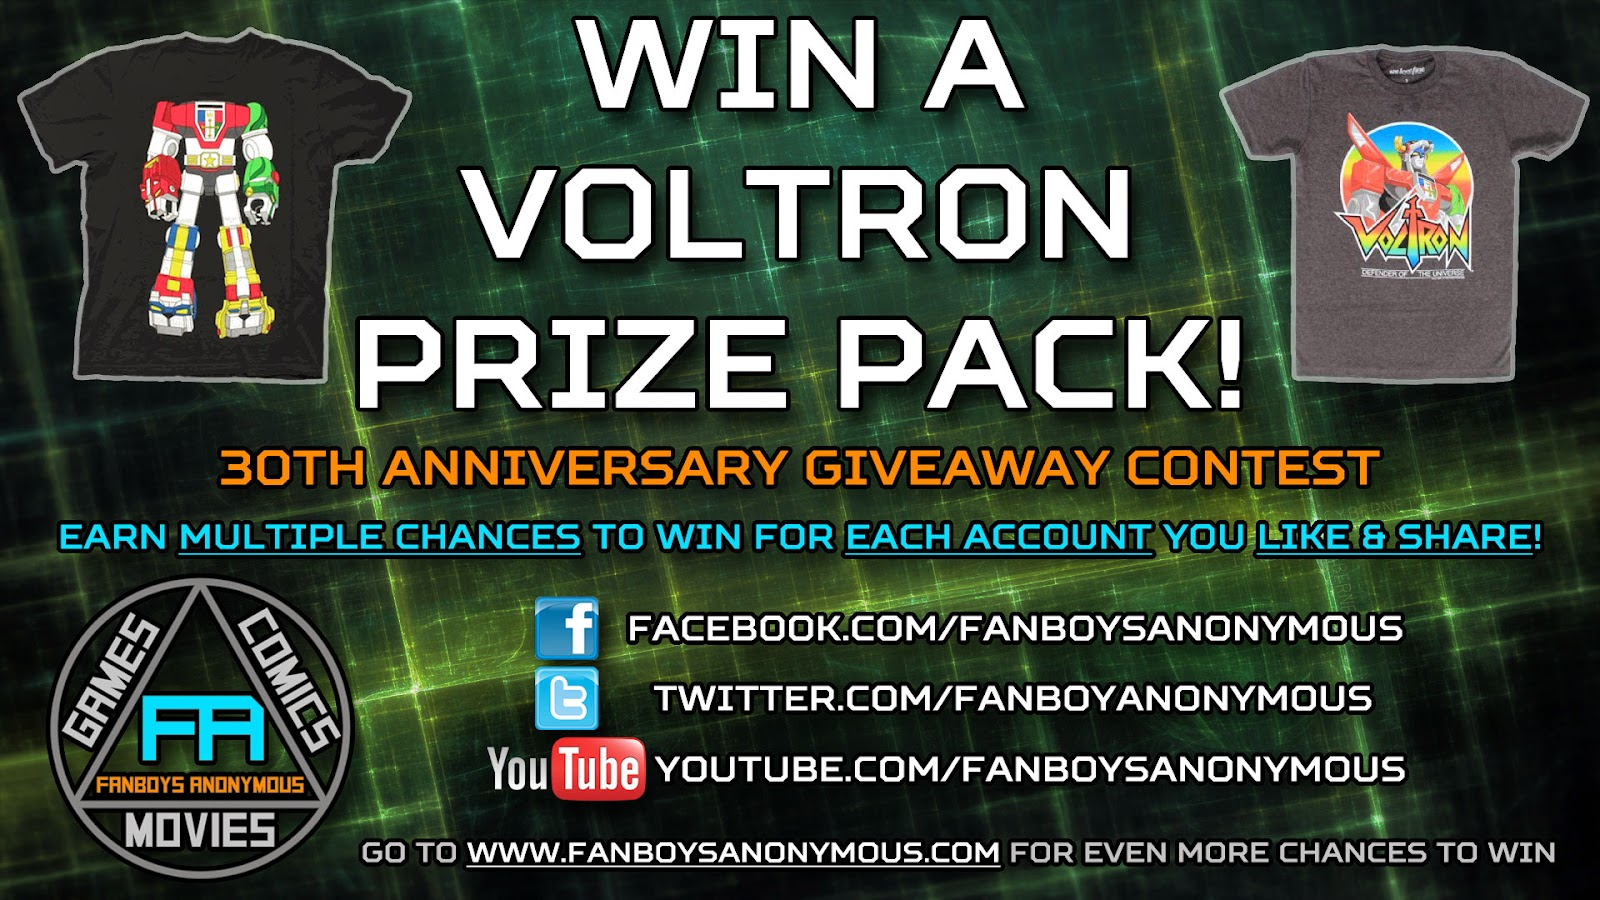 win a free Voltron t-shirt 30th anniversary contest